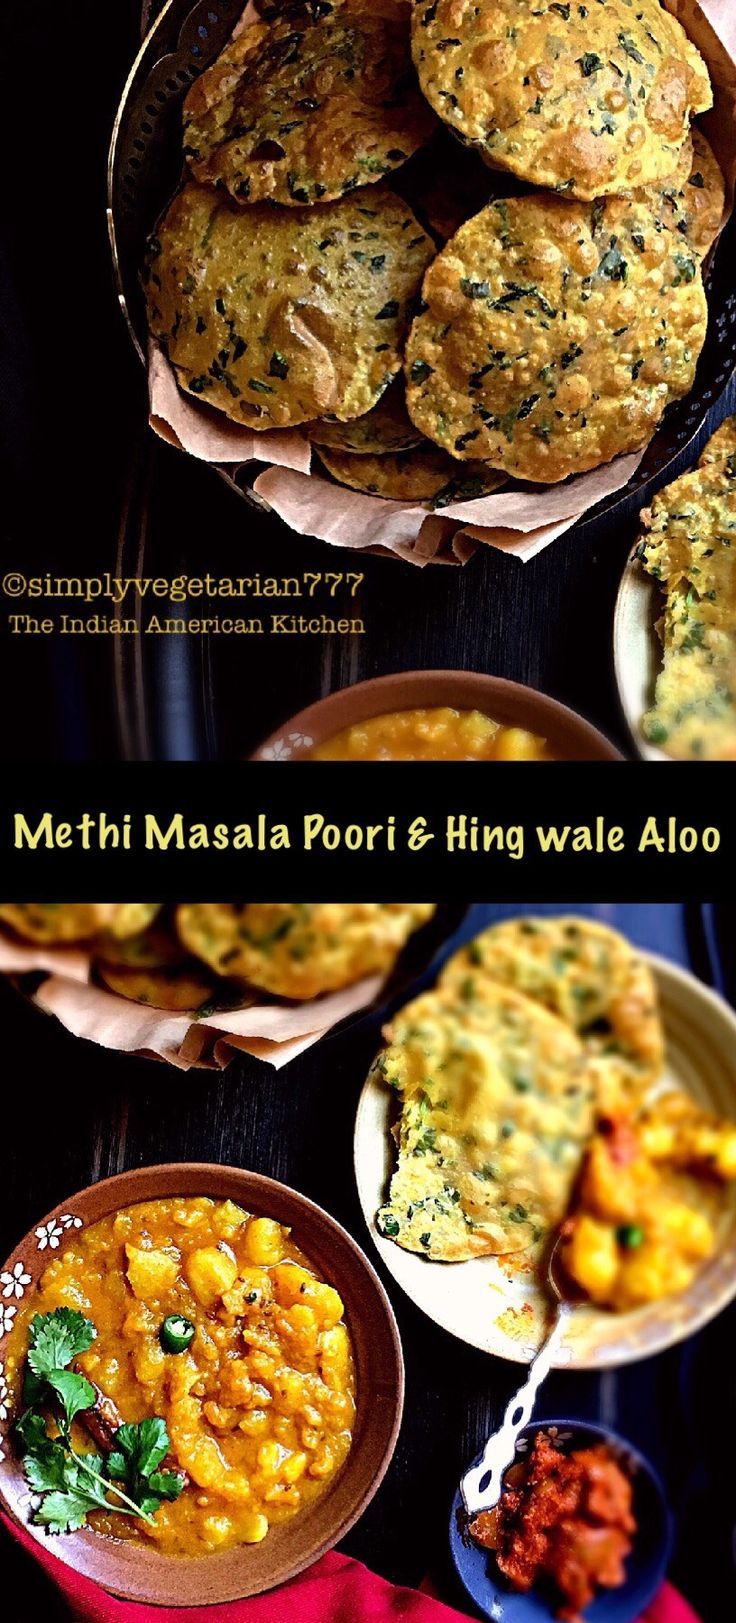 Methi Masala Poori & Hing Wale Aloo is the perfect meal from Northern States of India. This combination can warm up your heart in winters. It is simply finger licking delicious.